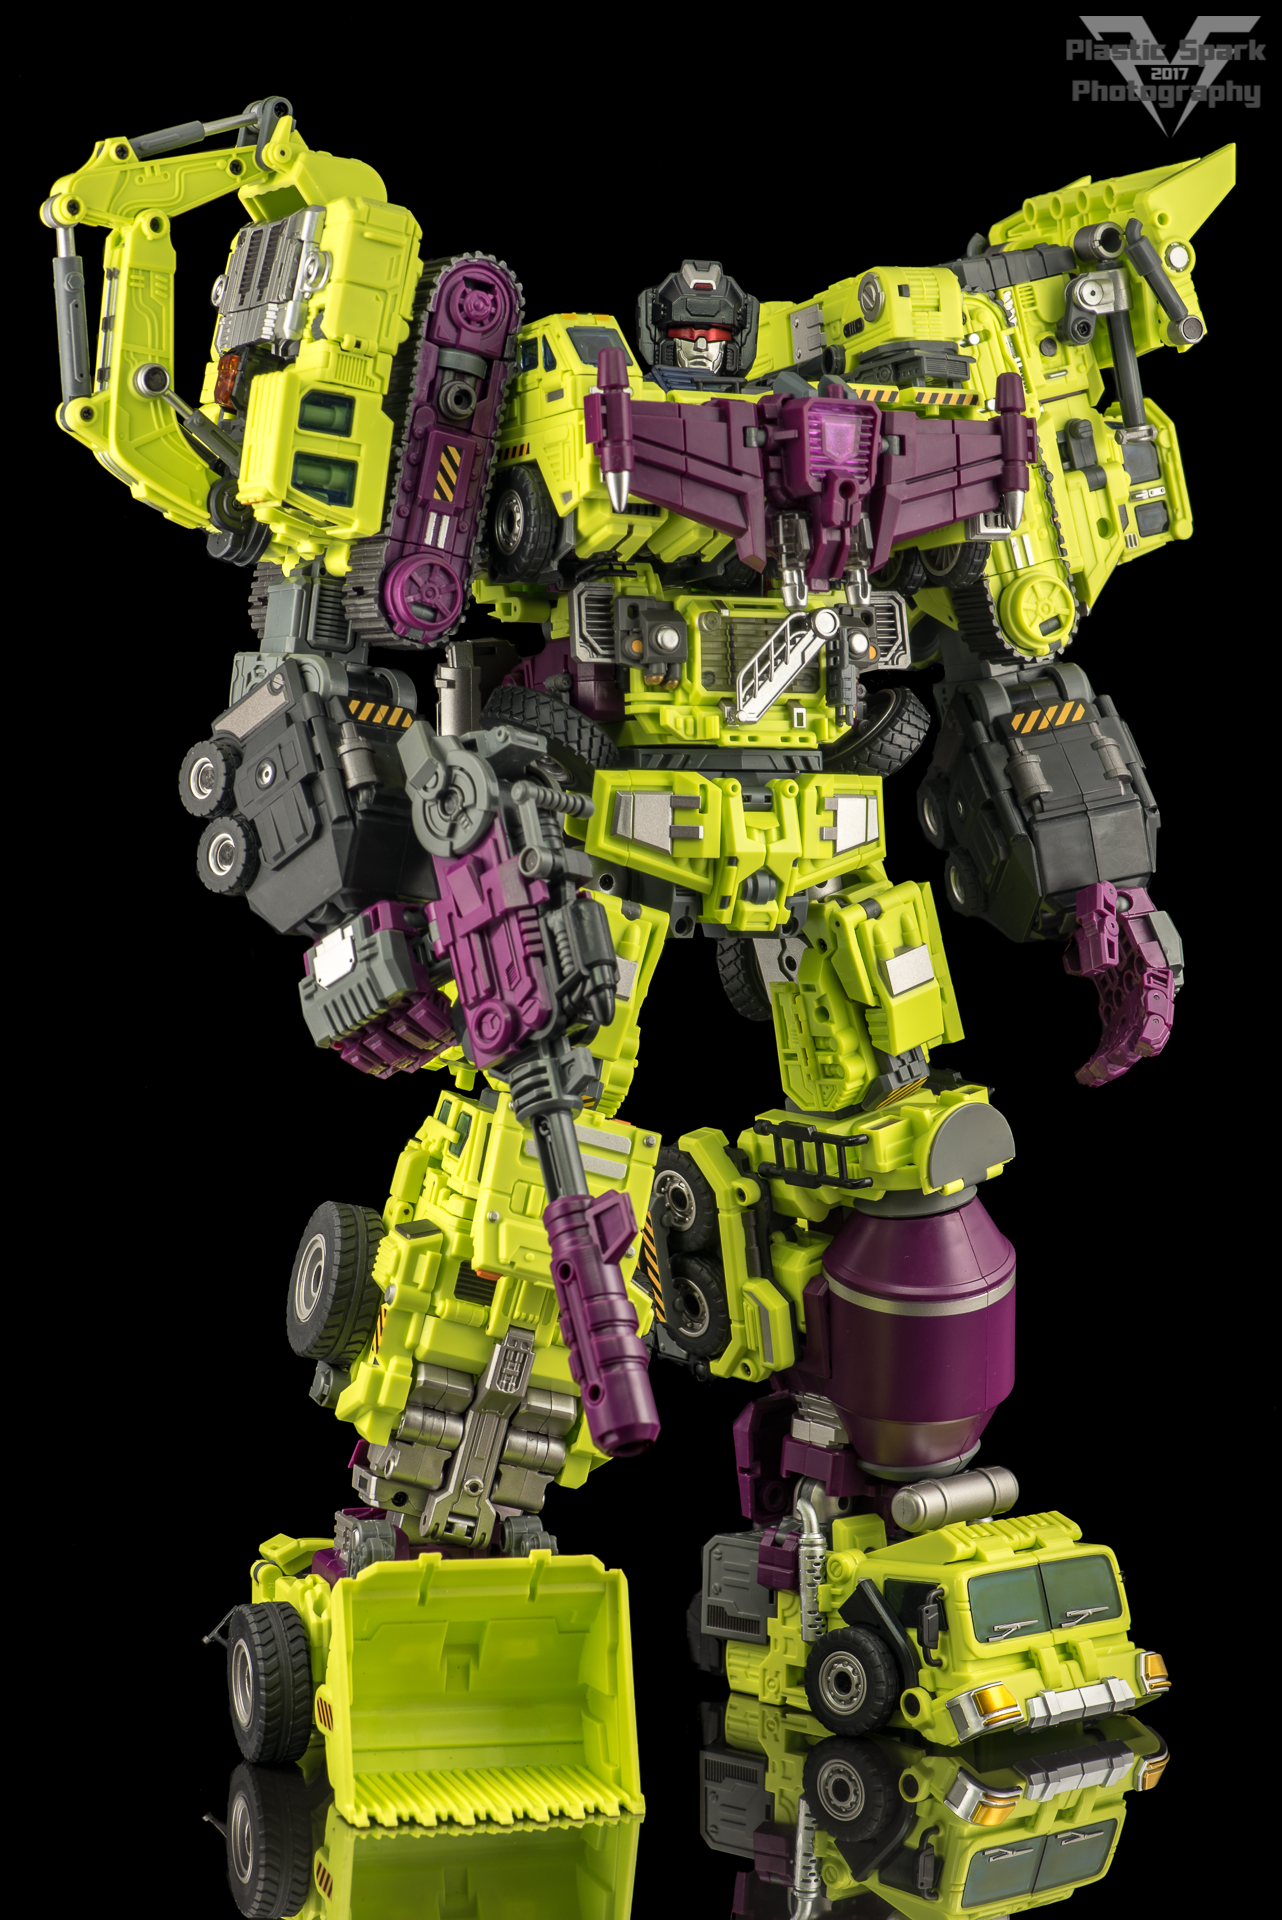 Generation-Toy-Gravity-Builder-(21-of-34).png